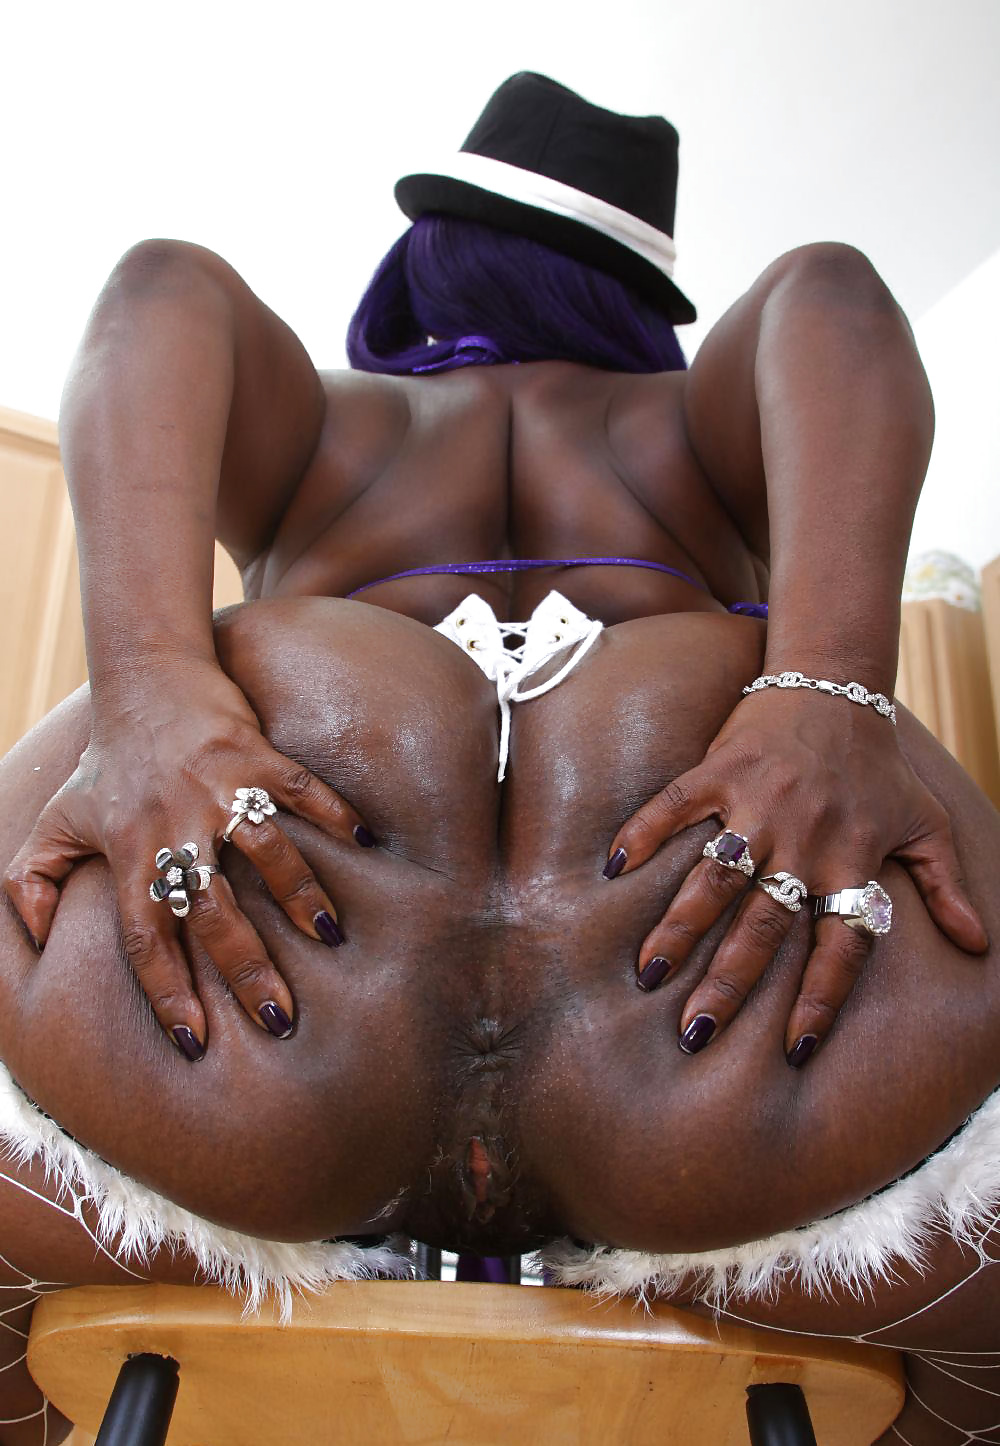 interracial trannies in corsets for sex